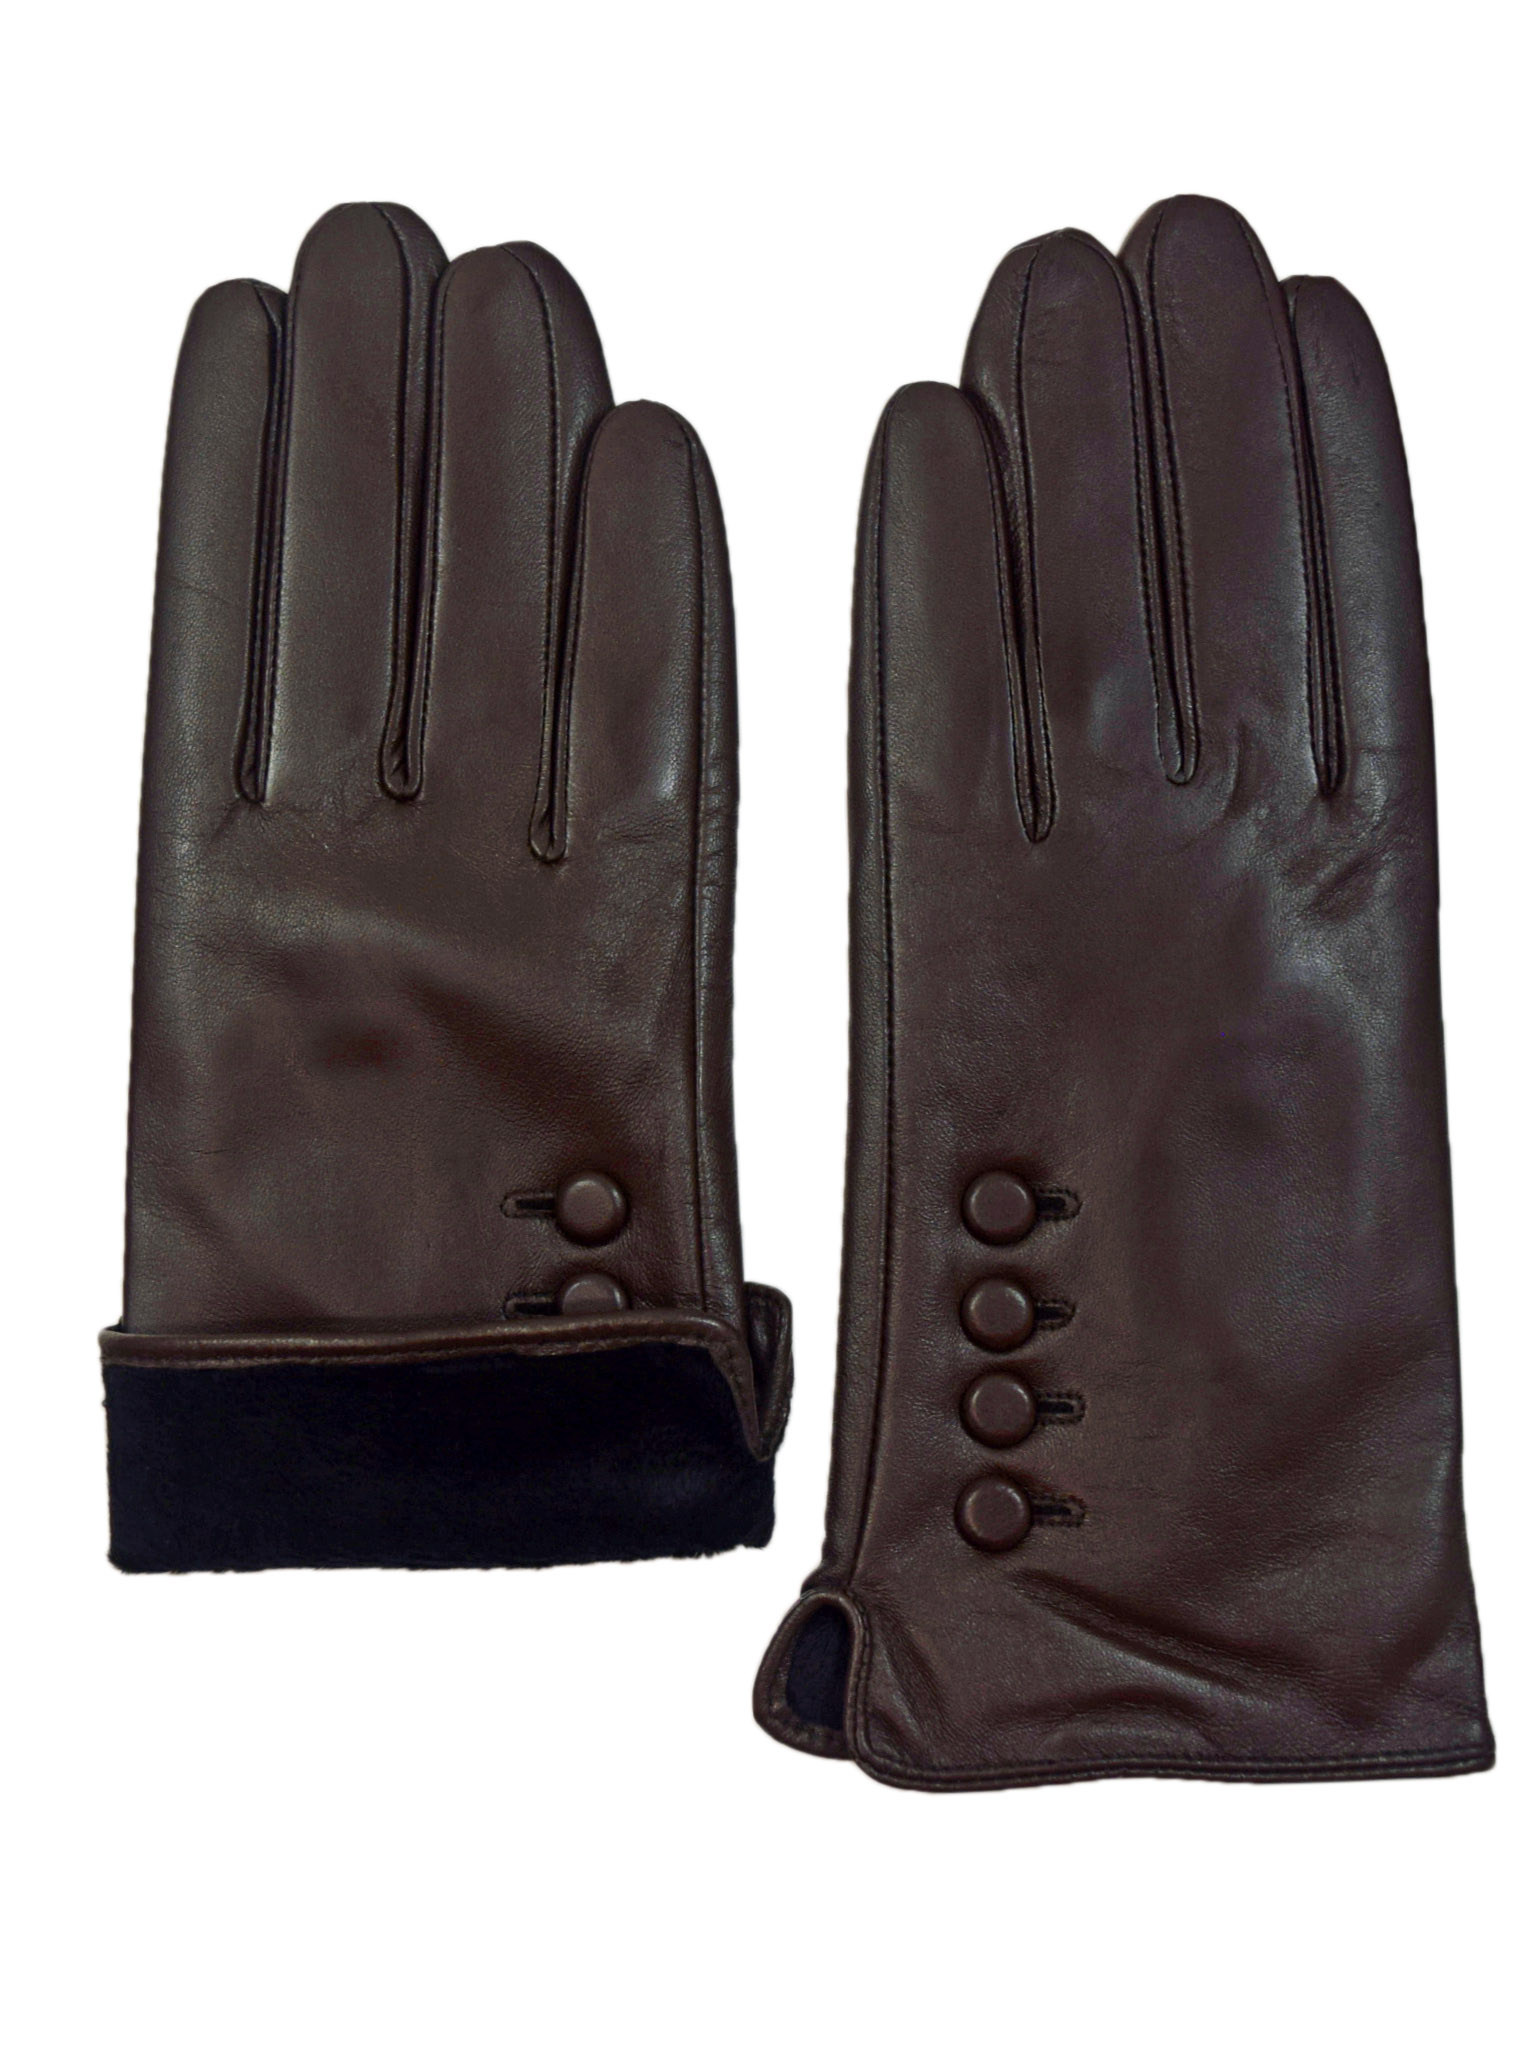 Giromy-Samoni-Womens-Warm-Winter-Plush-Lined-Leather-Driving-Gloves-Brown thumbnail 14